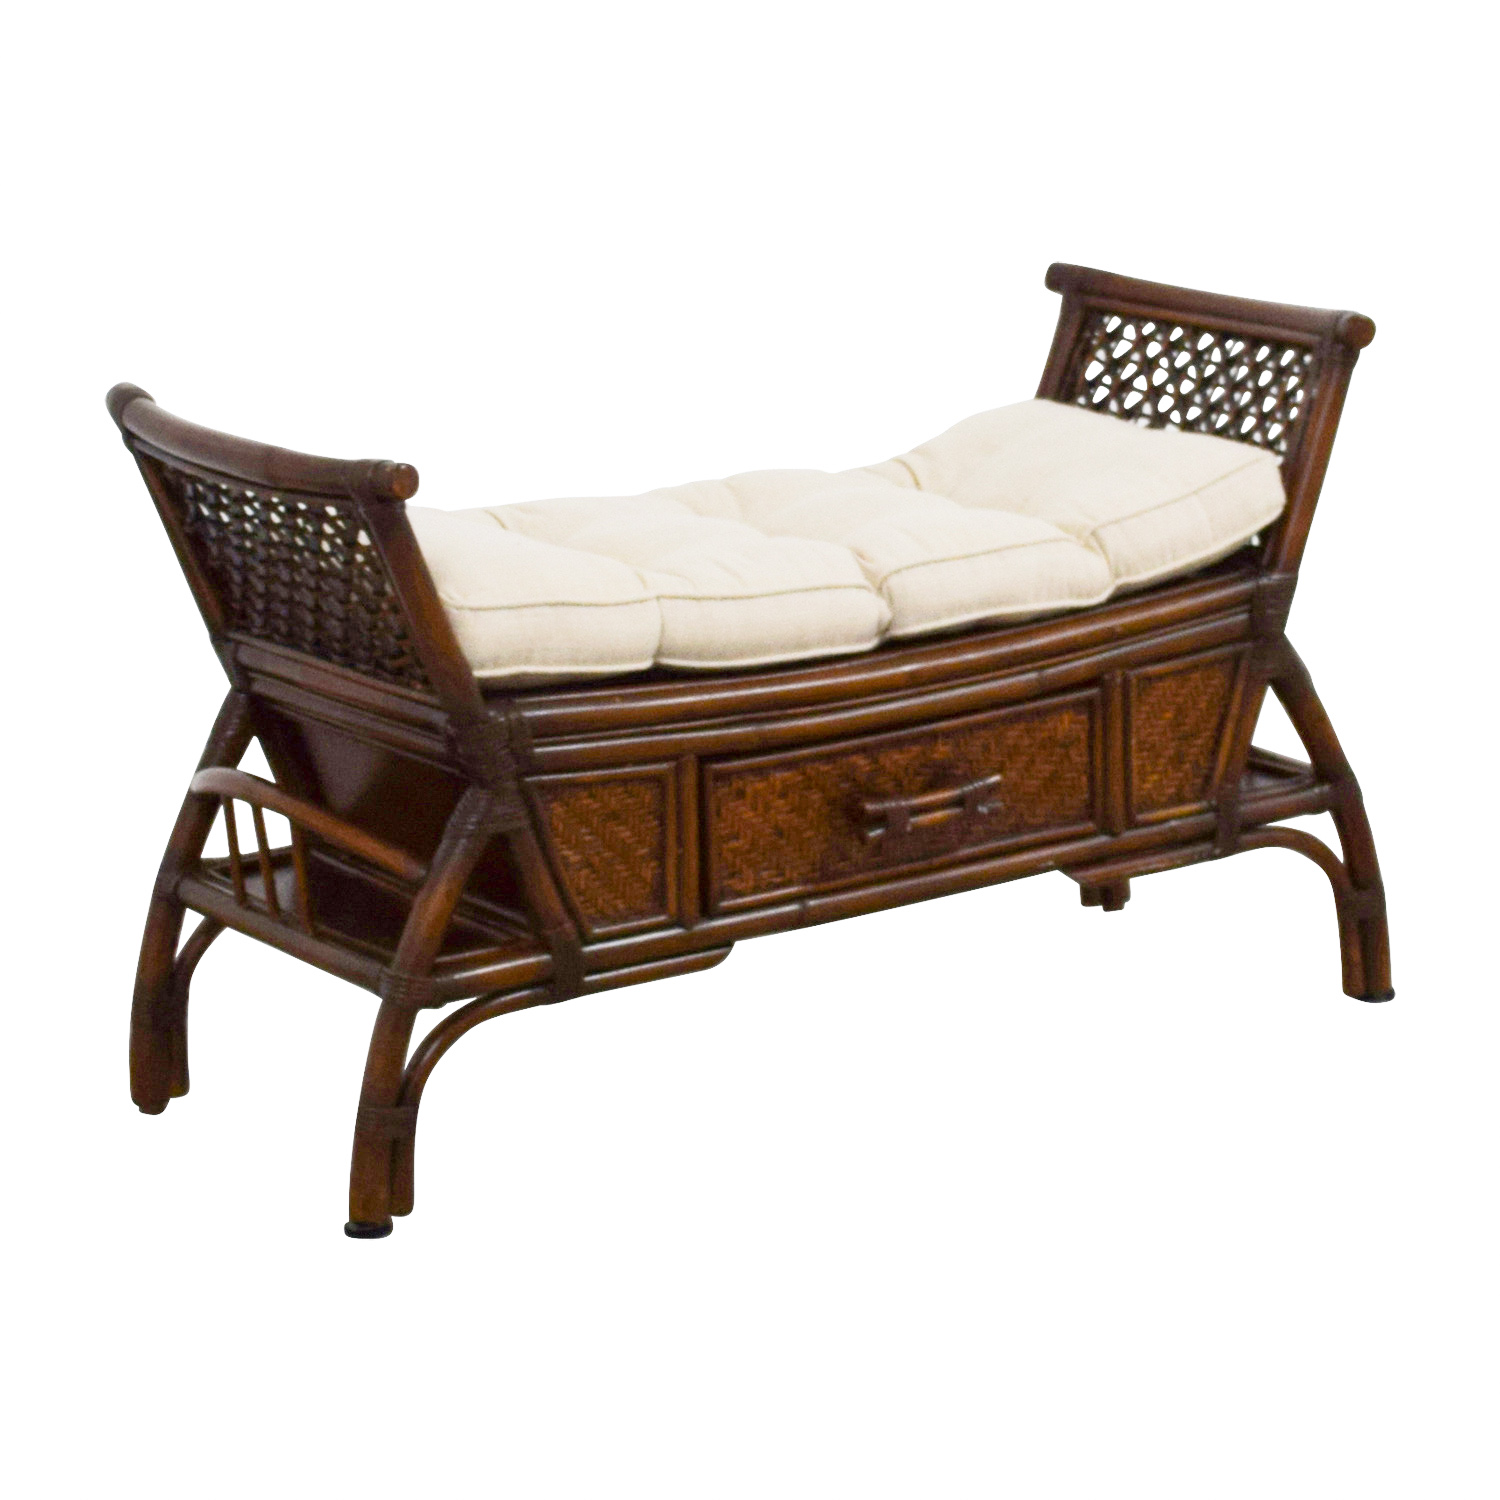 51 Off Pier 1 Imports Pier 1 Imports Walnut Wicker